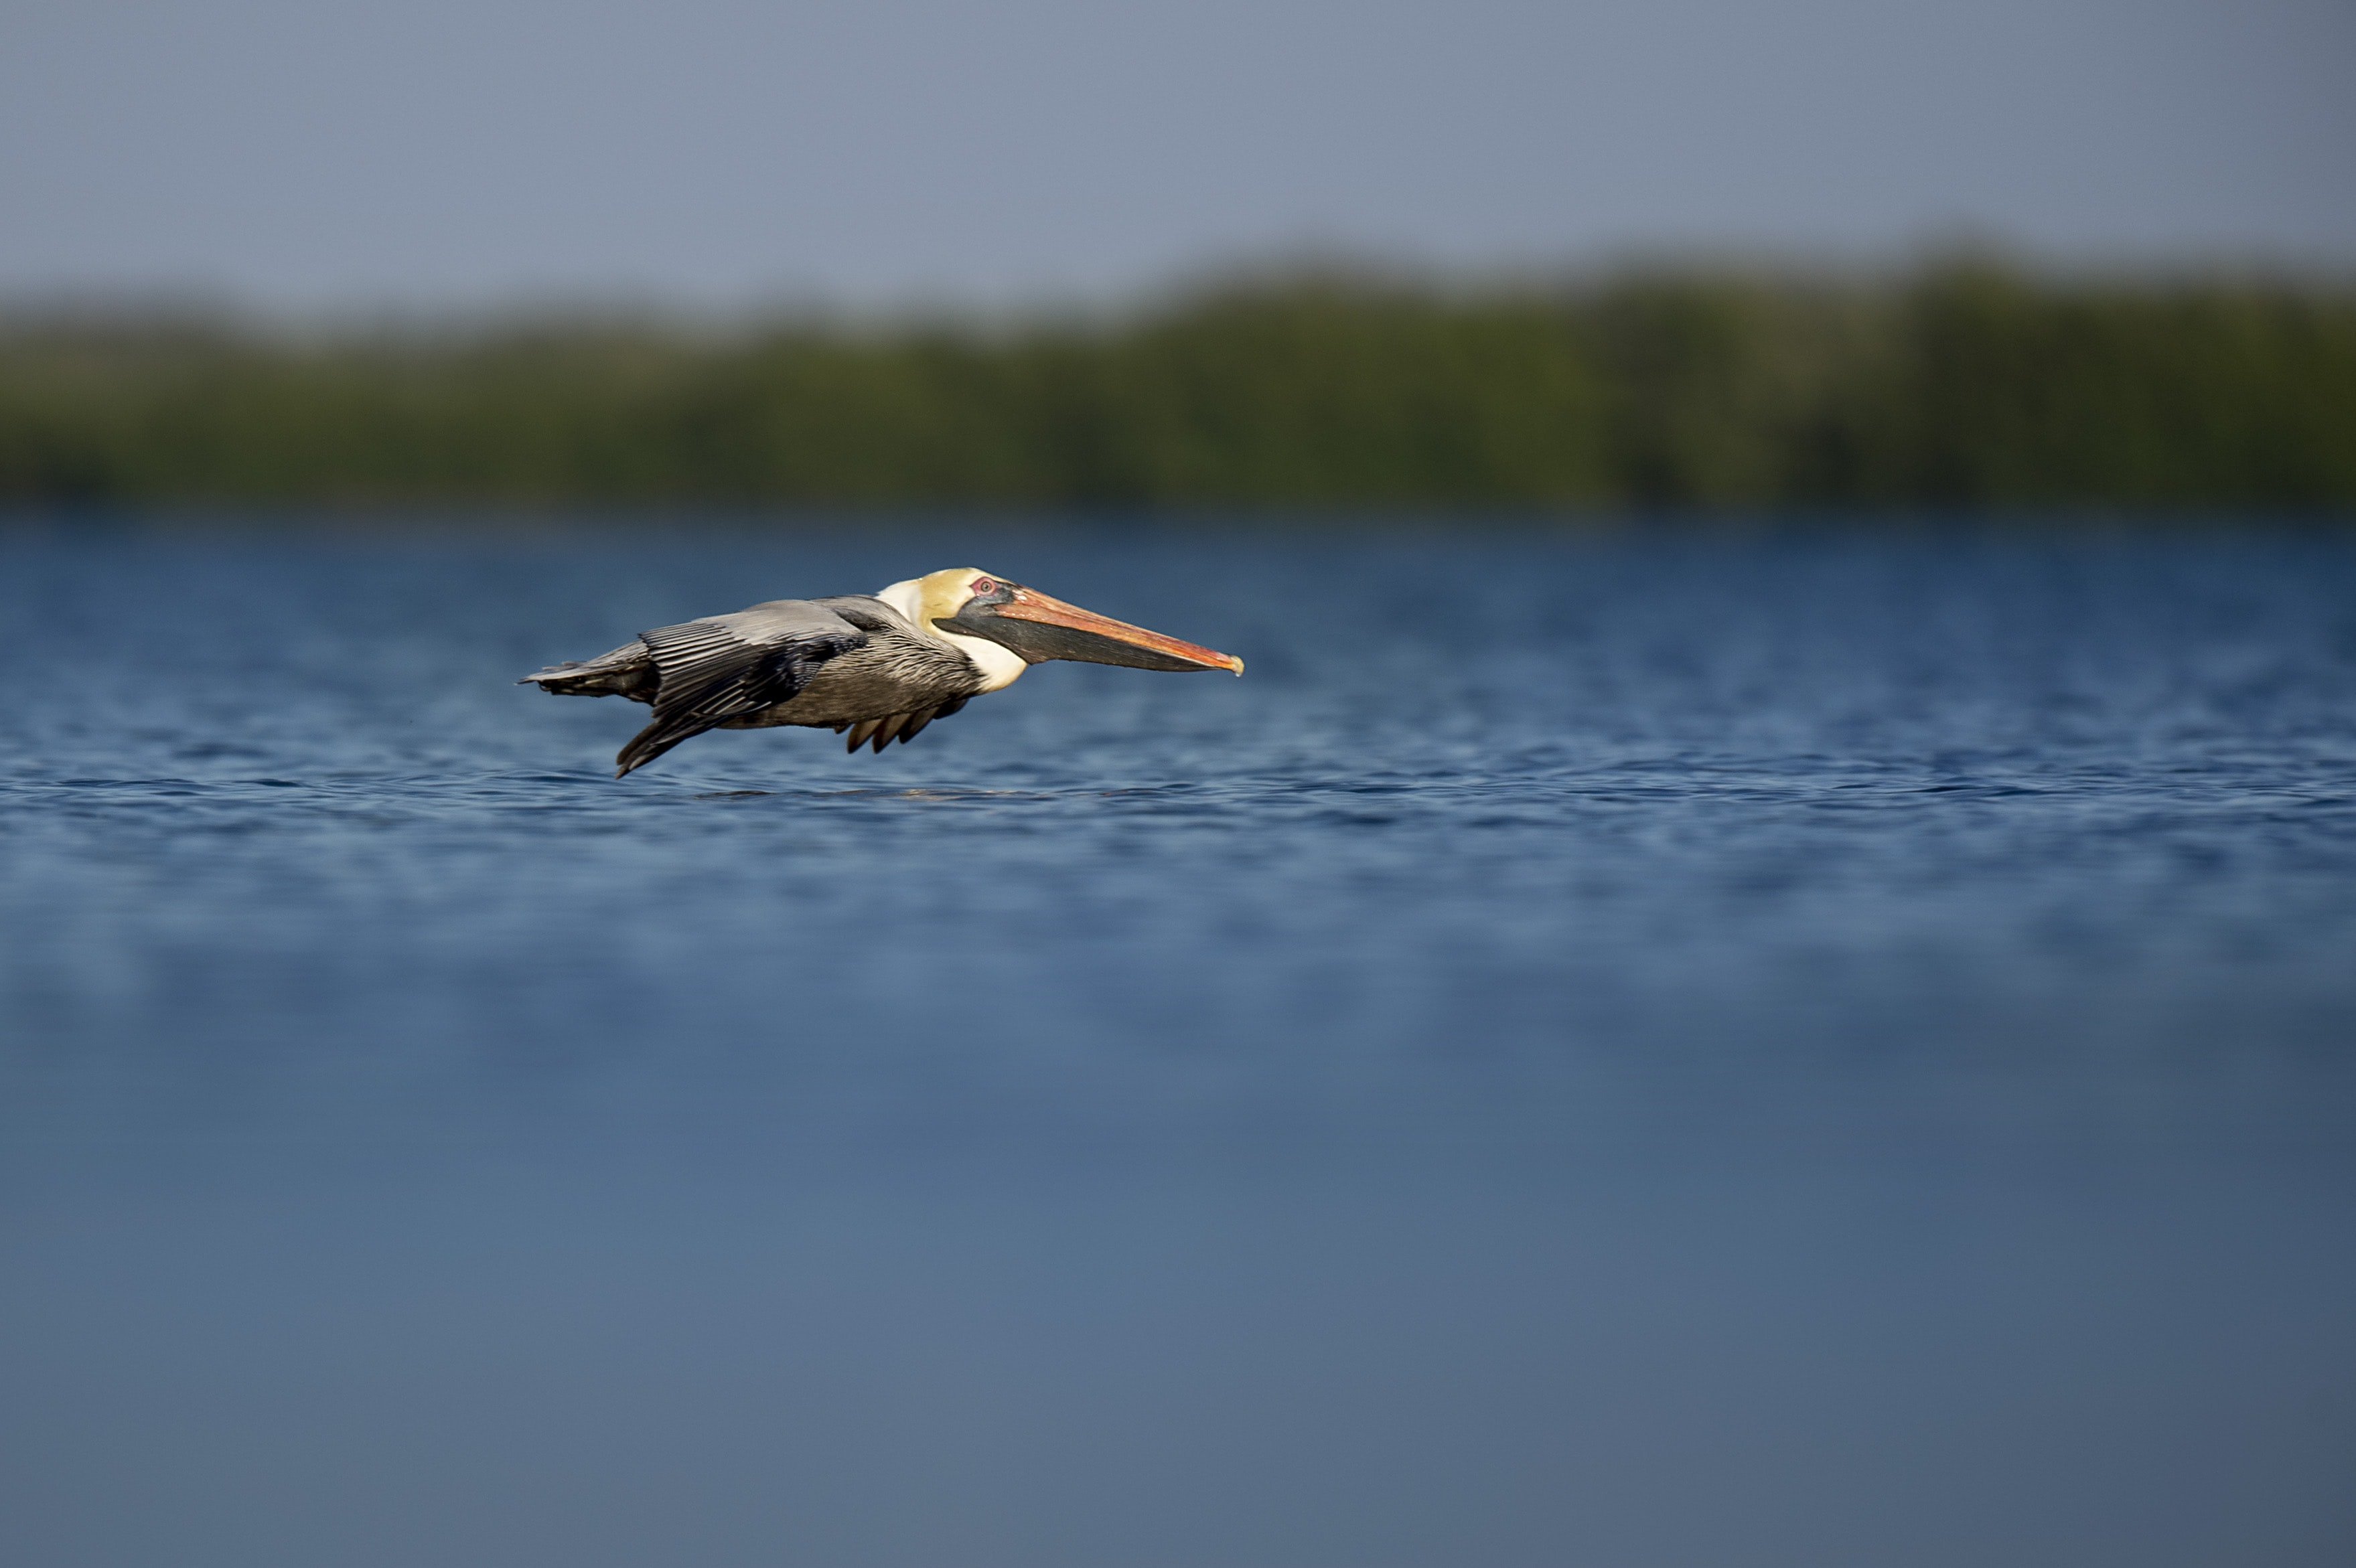 A pelican flying over a lake in Florida.